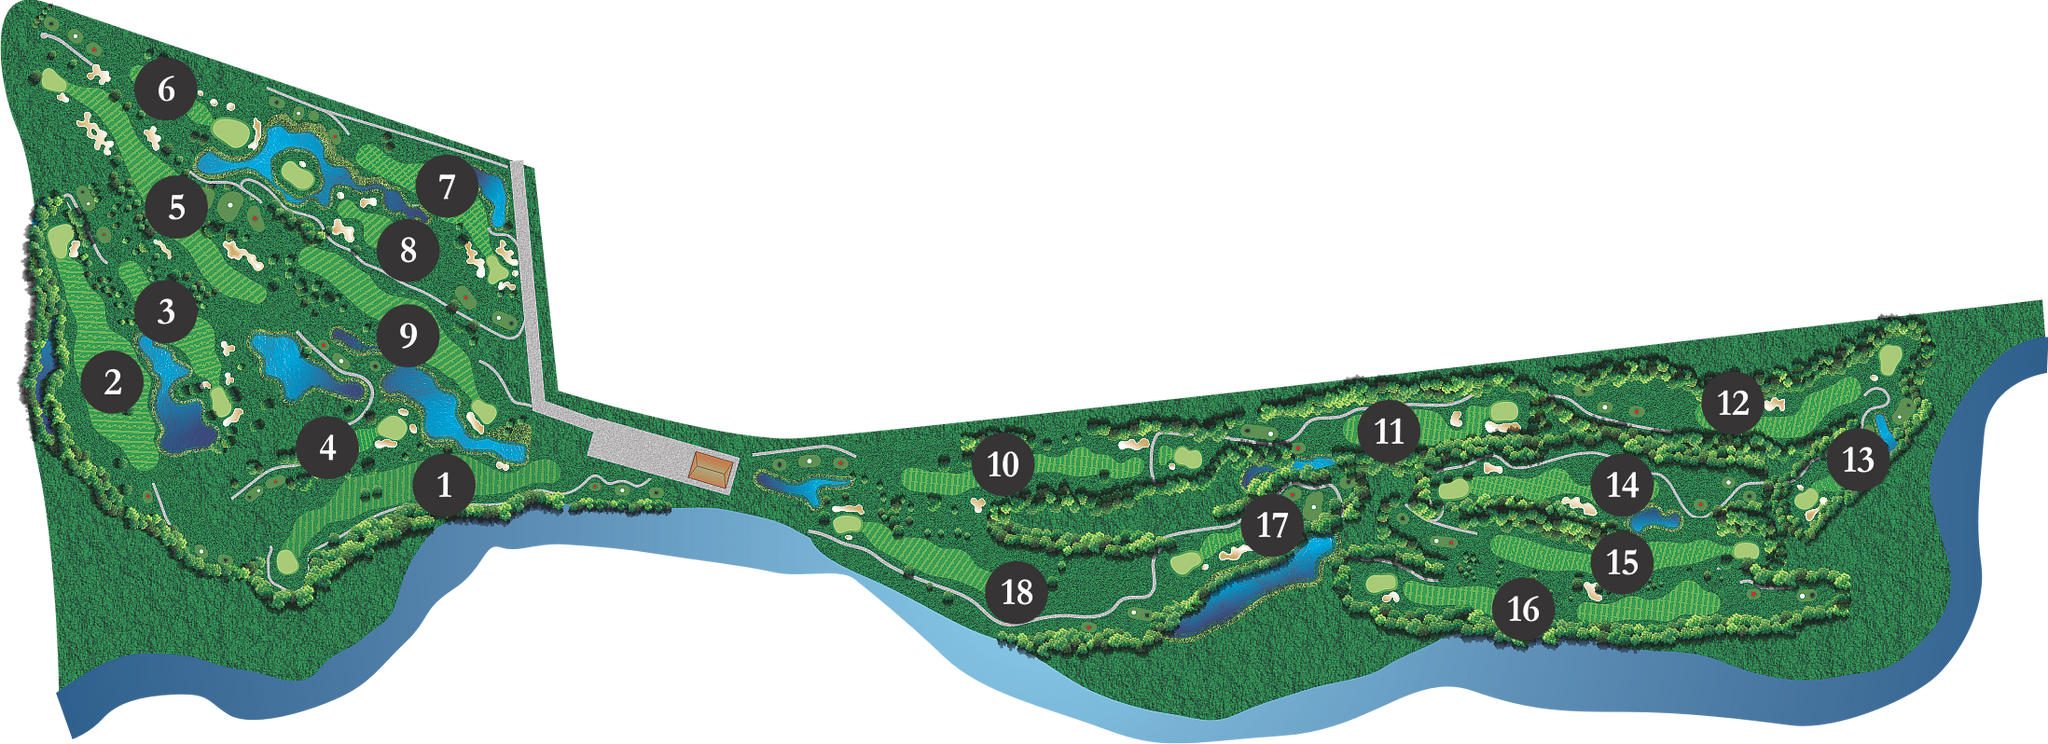 Meadows at Pemberton Course Map